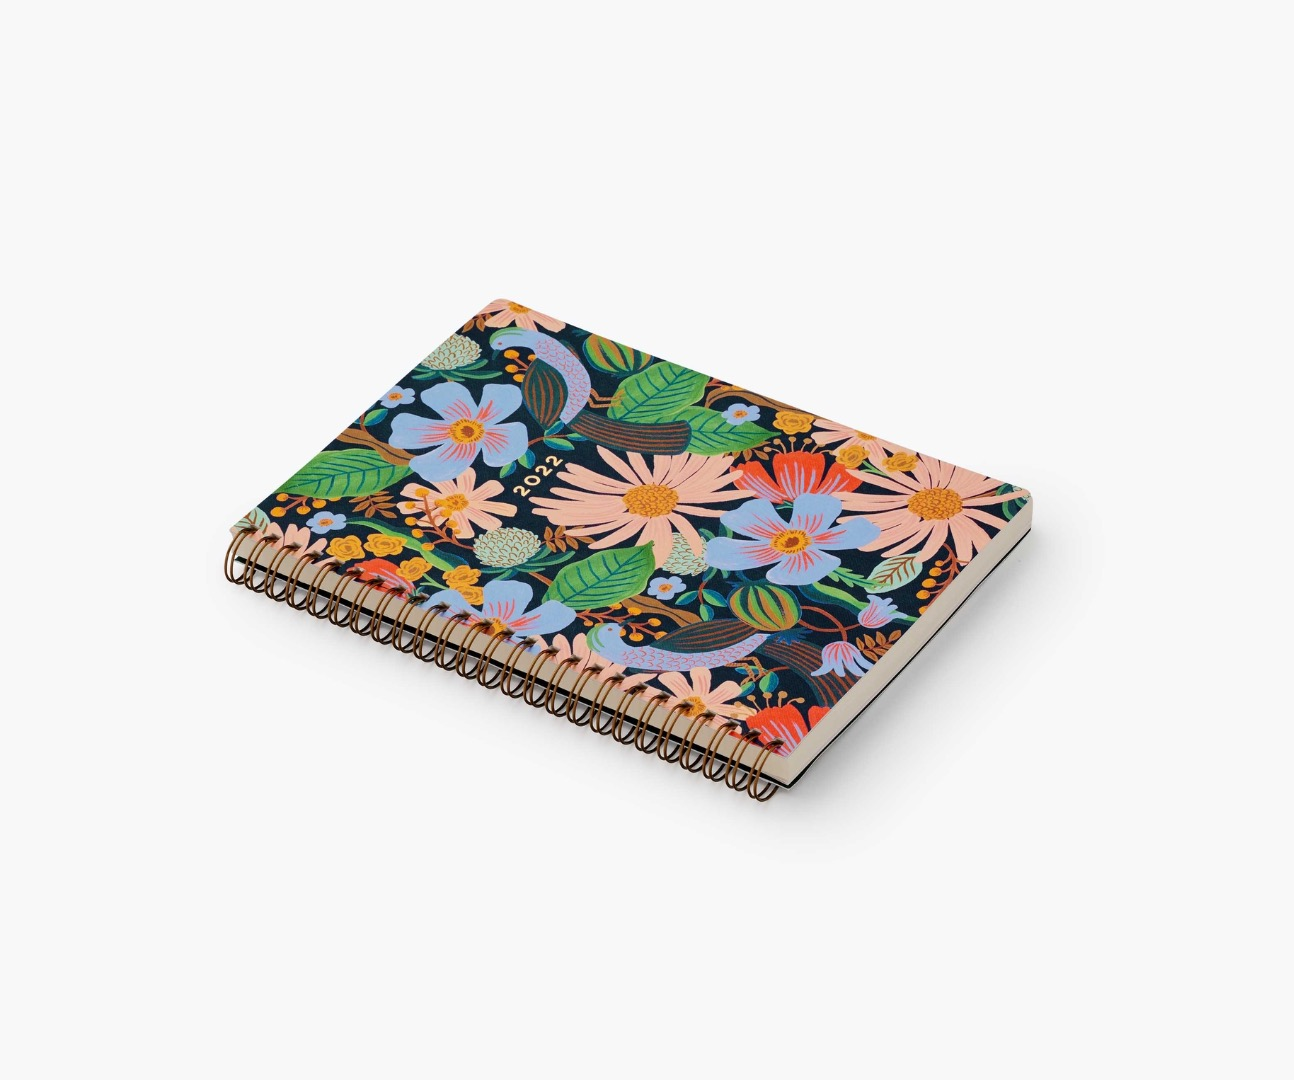 2022 Dovecote Softcover Spiral Planner 7